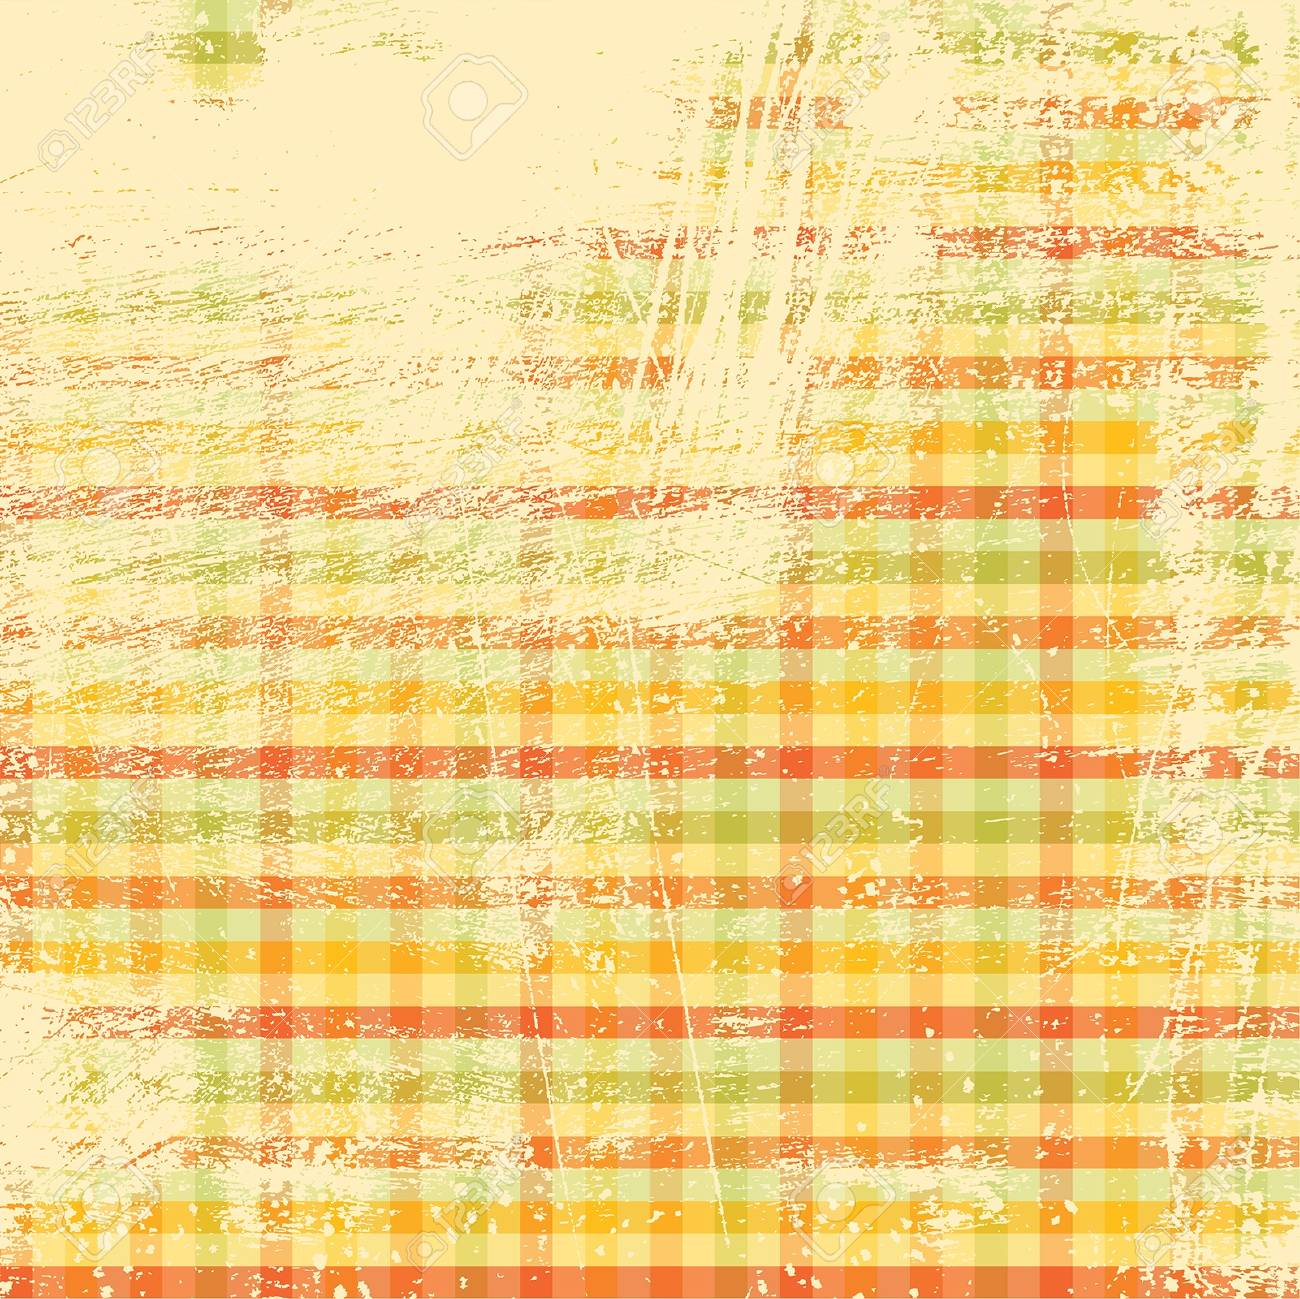 Square grunge texture background. Stock Vector - 15874822